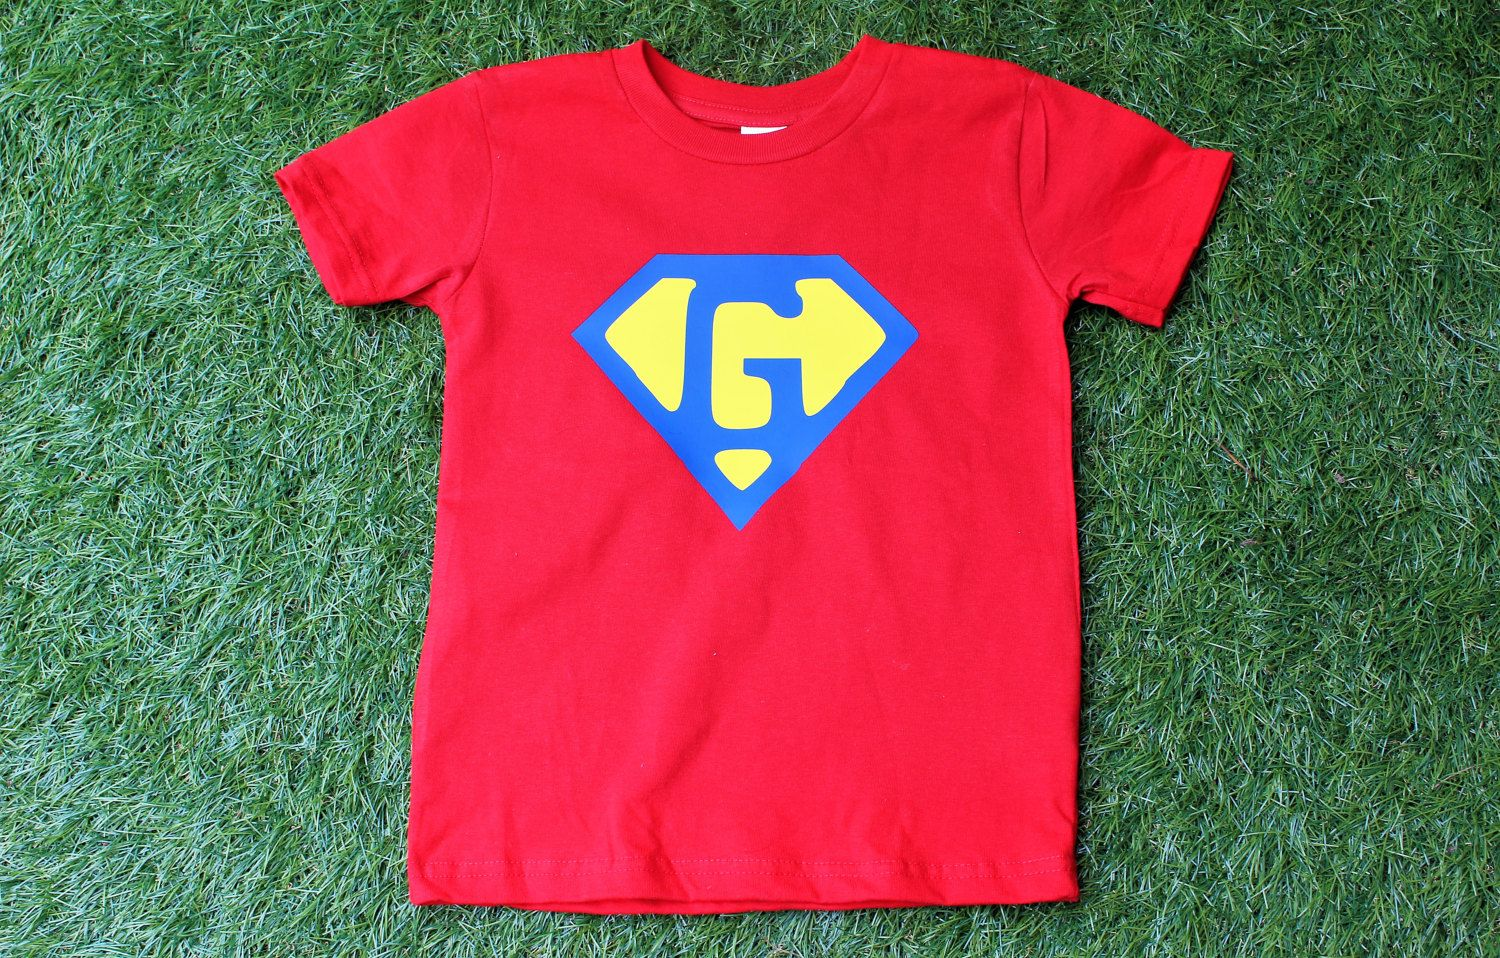 Superhero Birthday Shirt Custom Initial Super Hero Logo Red Toddler With Blue Emblem Customize Or Age By TheCapeLady